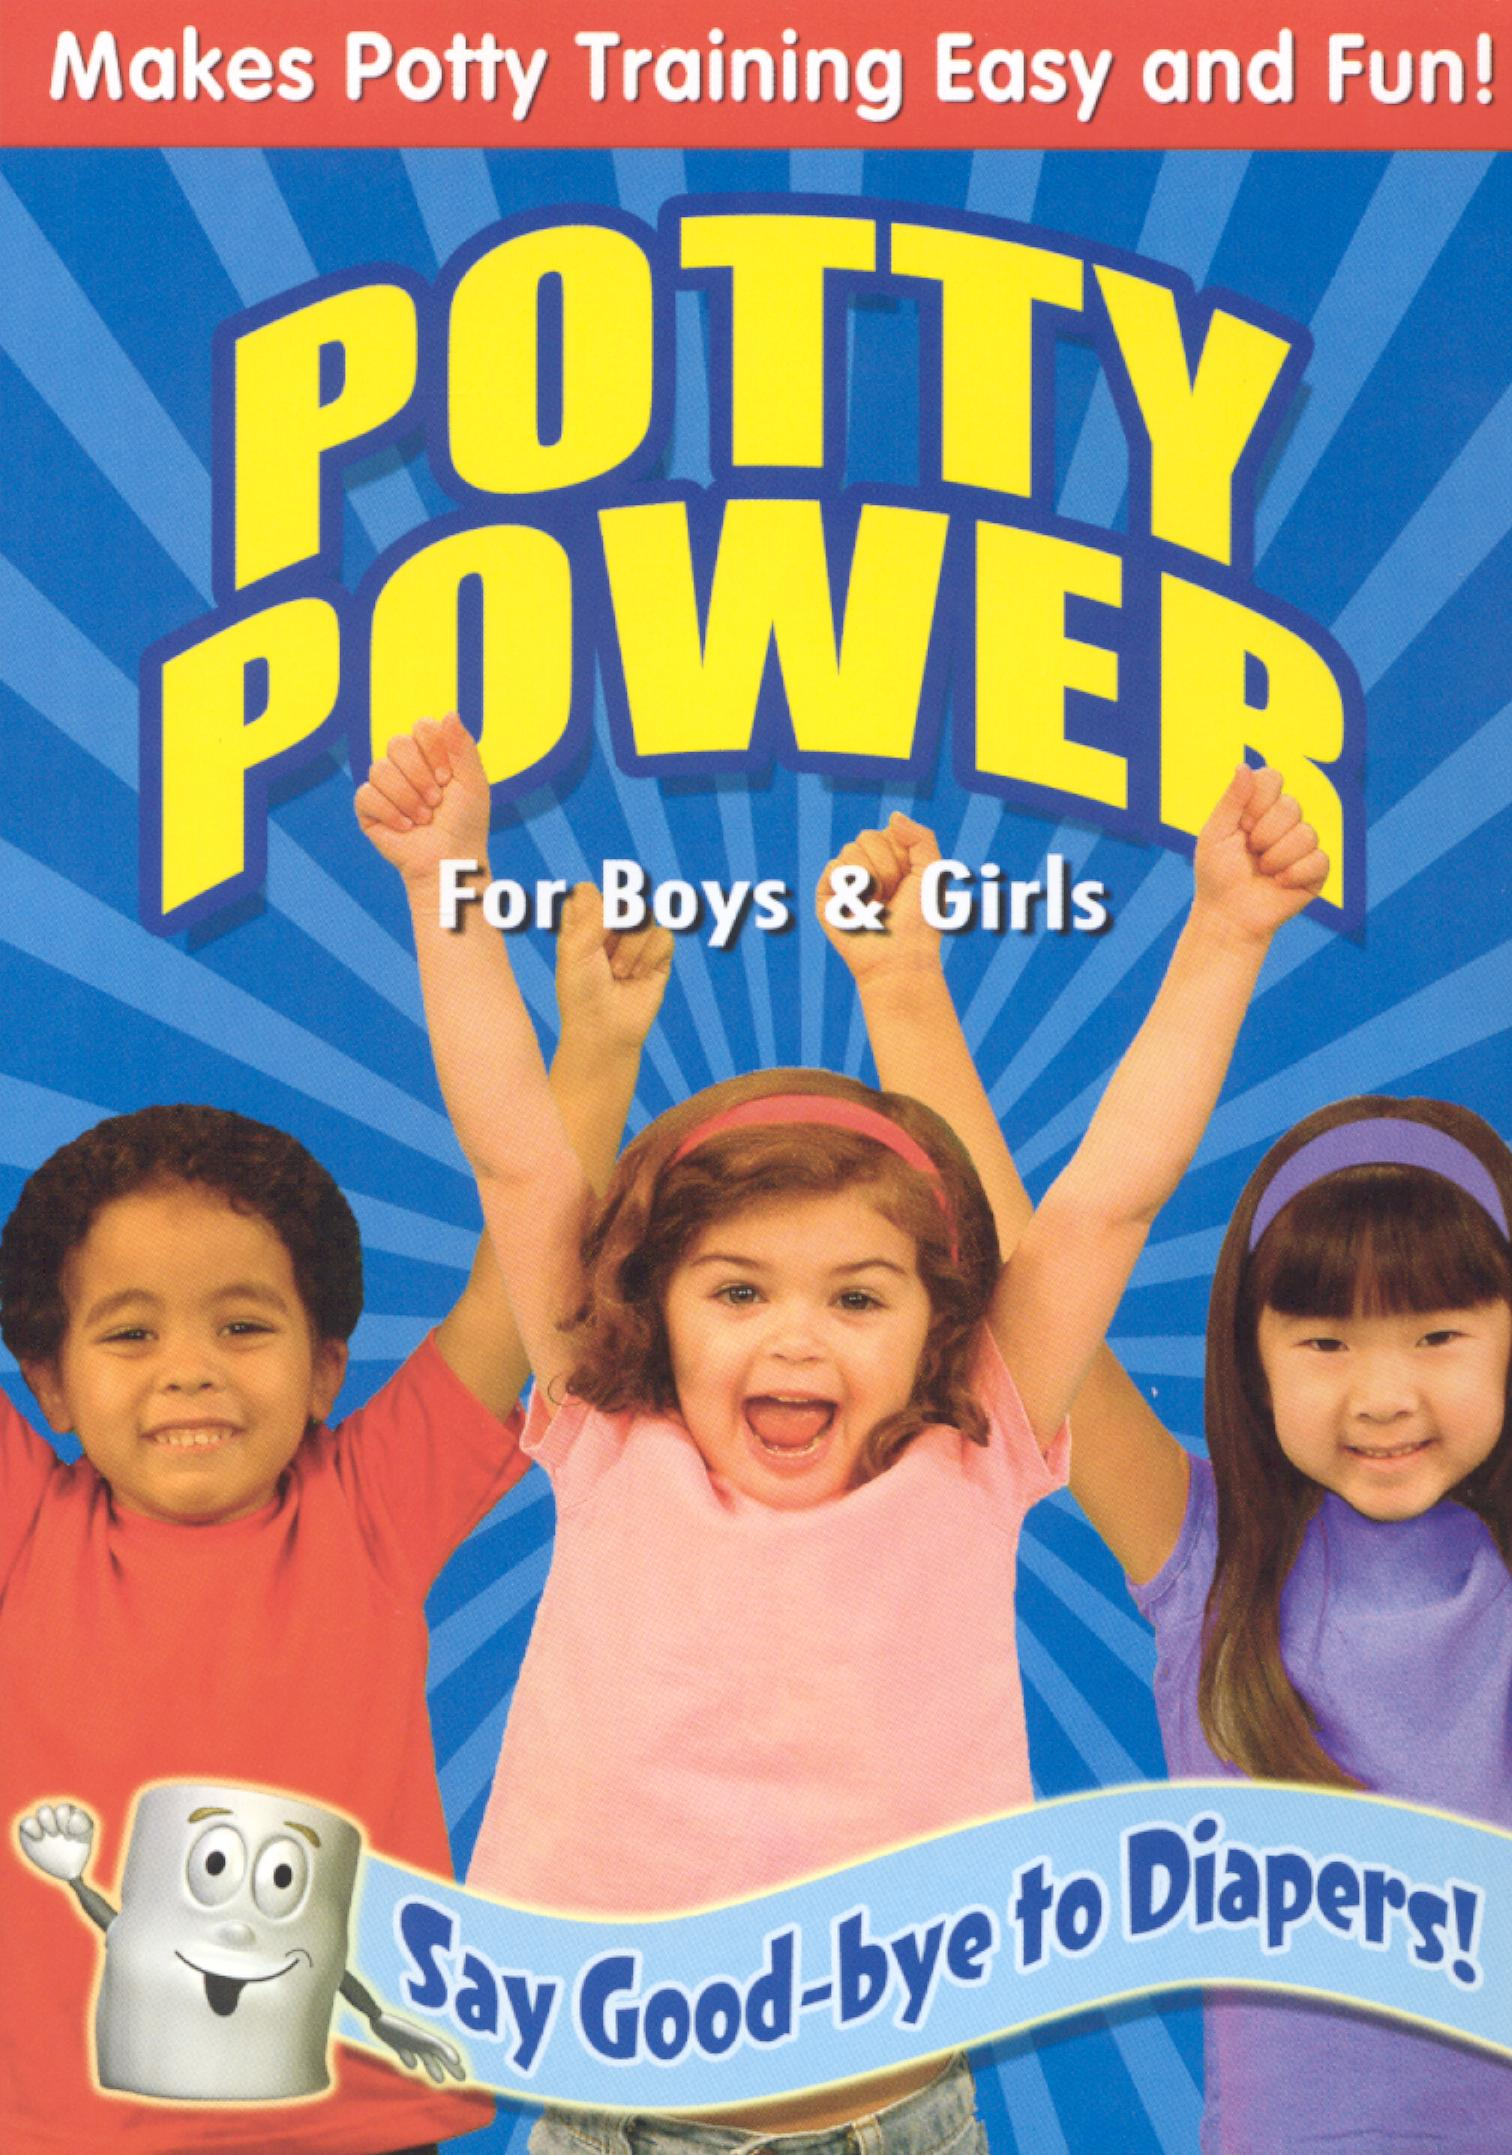 Potty Power for Boys & Girls